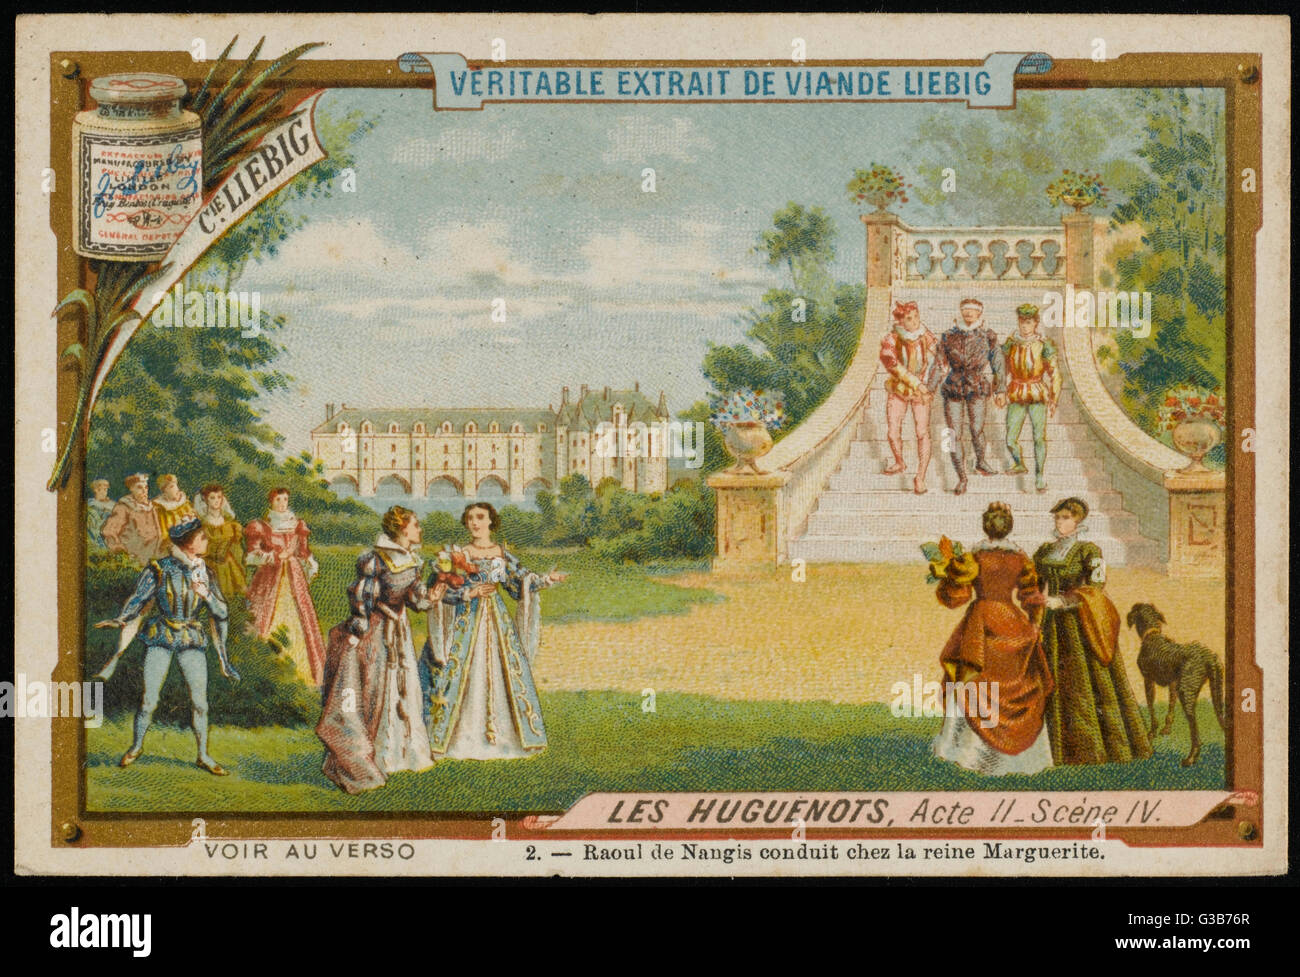 Act 2 scene 4 - the Huguenot  Raoul de Nangis is conducted  to meet queen Marguerite de  Valois in the gardens of - Stock Image